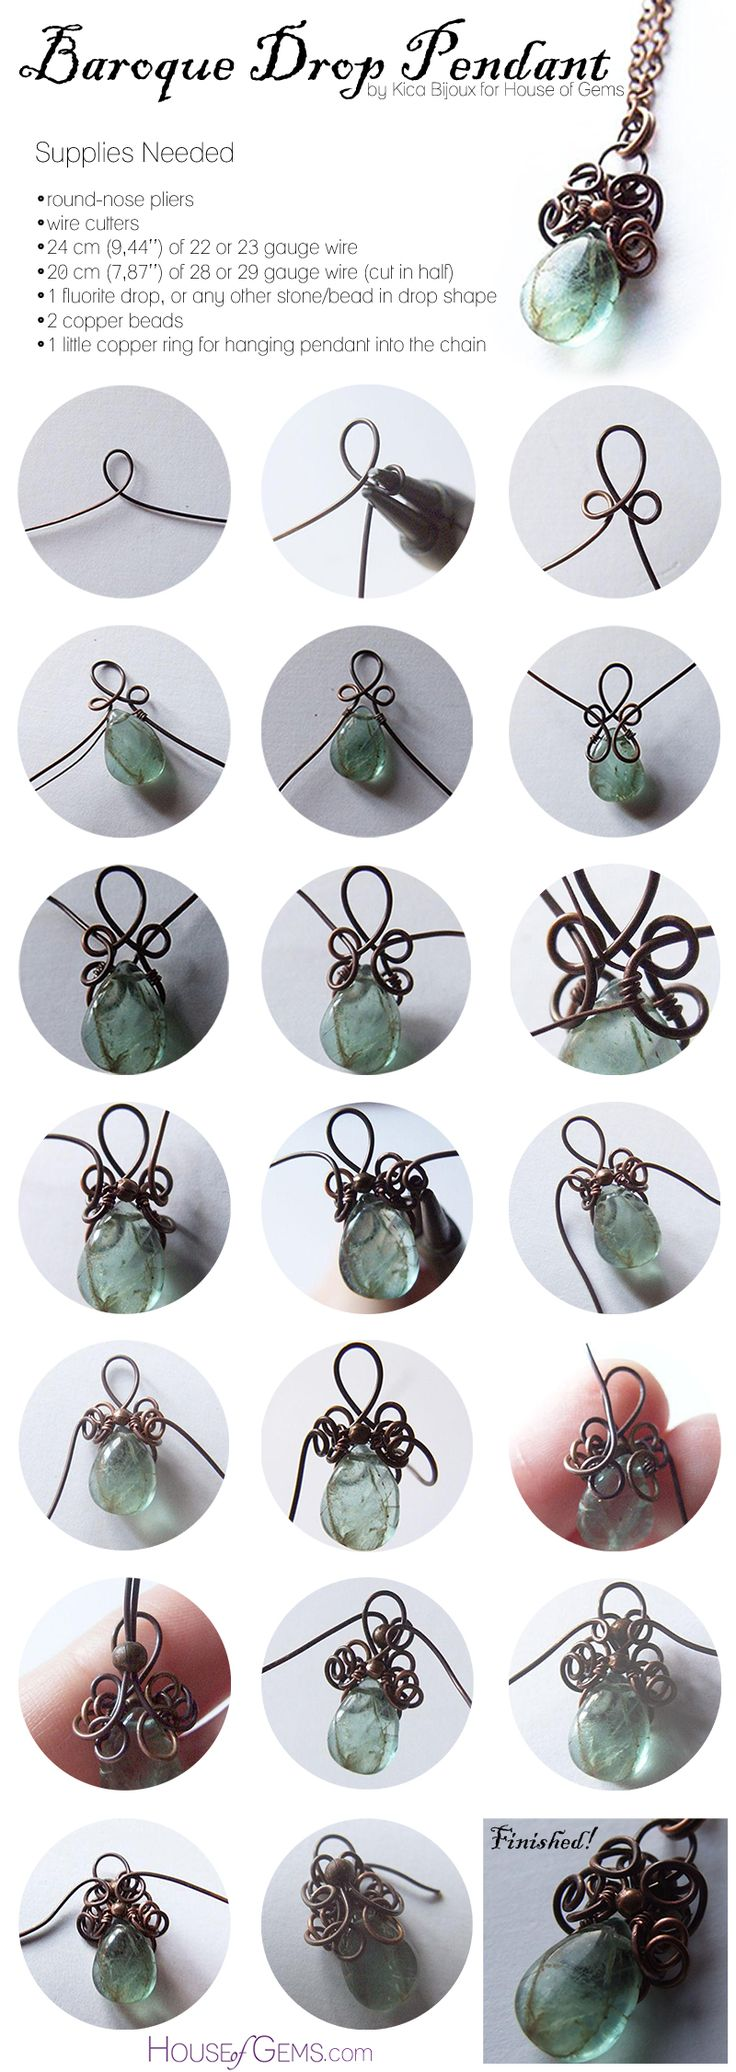 371 best wire jewelry images on Pinterest | Wire jewelry, Wire ...